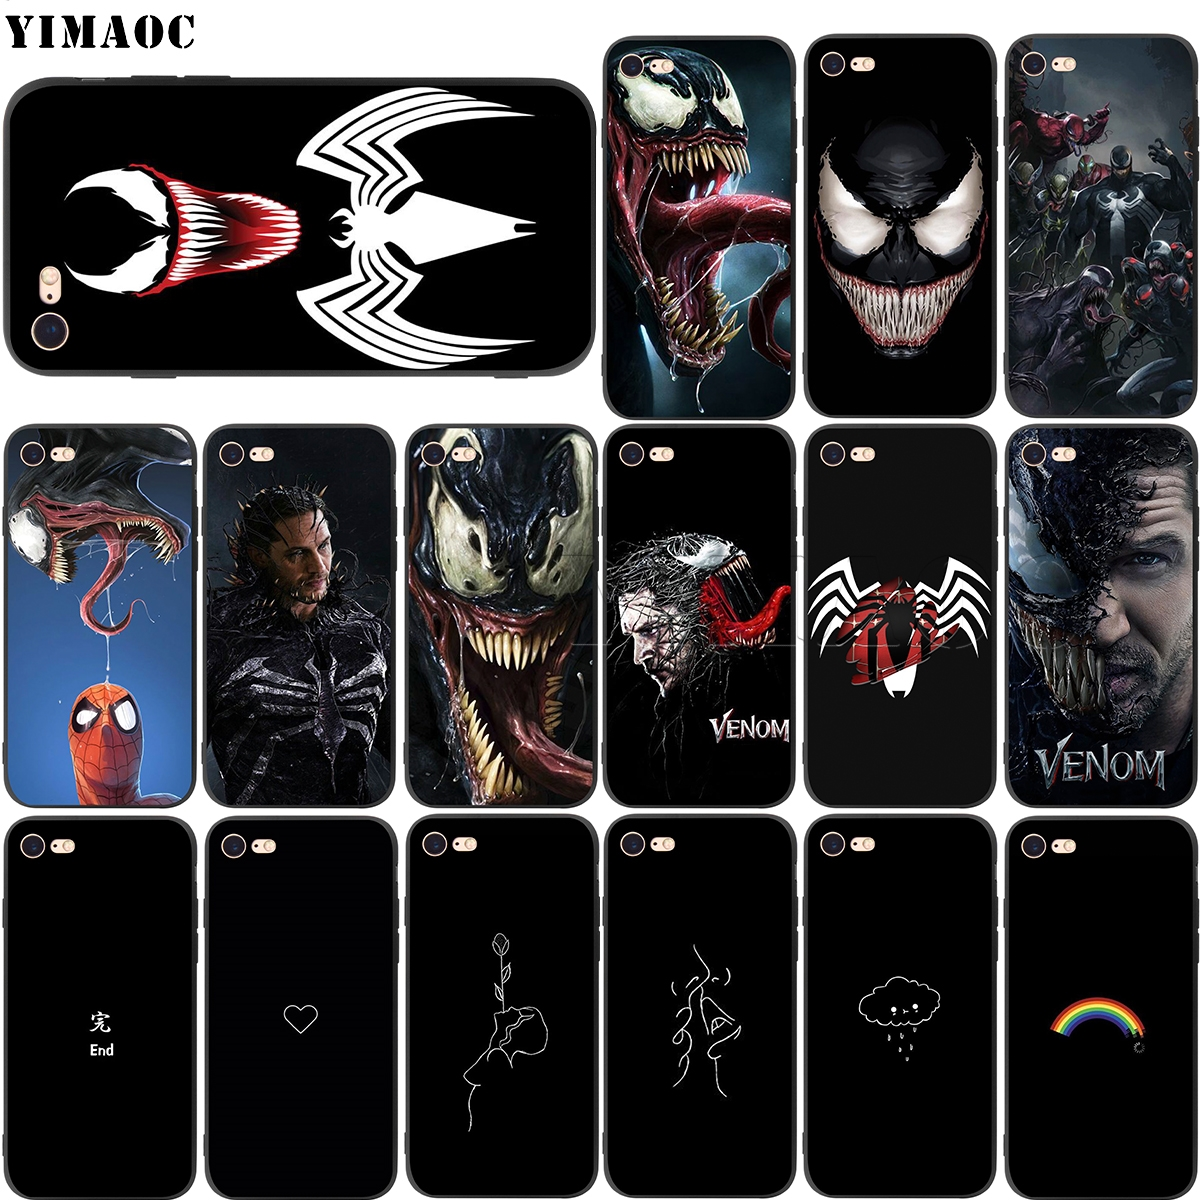 YIMAOC Venom Marvel Soft Silicone Case for iPhone XS Max XR X 8 7 6 6S Plus 5 5s se iPhone